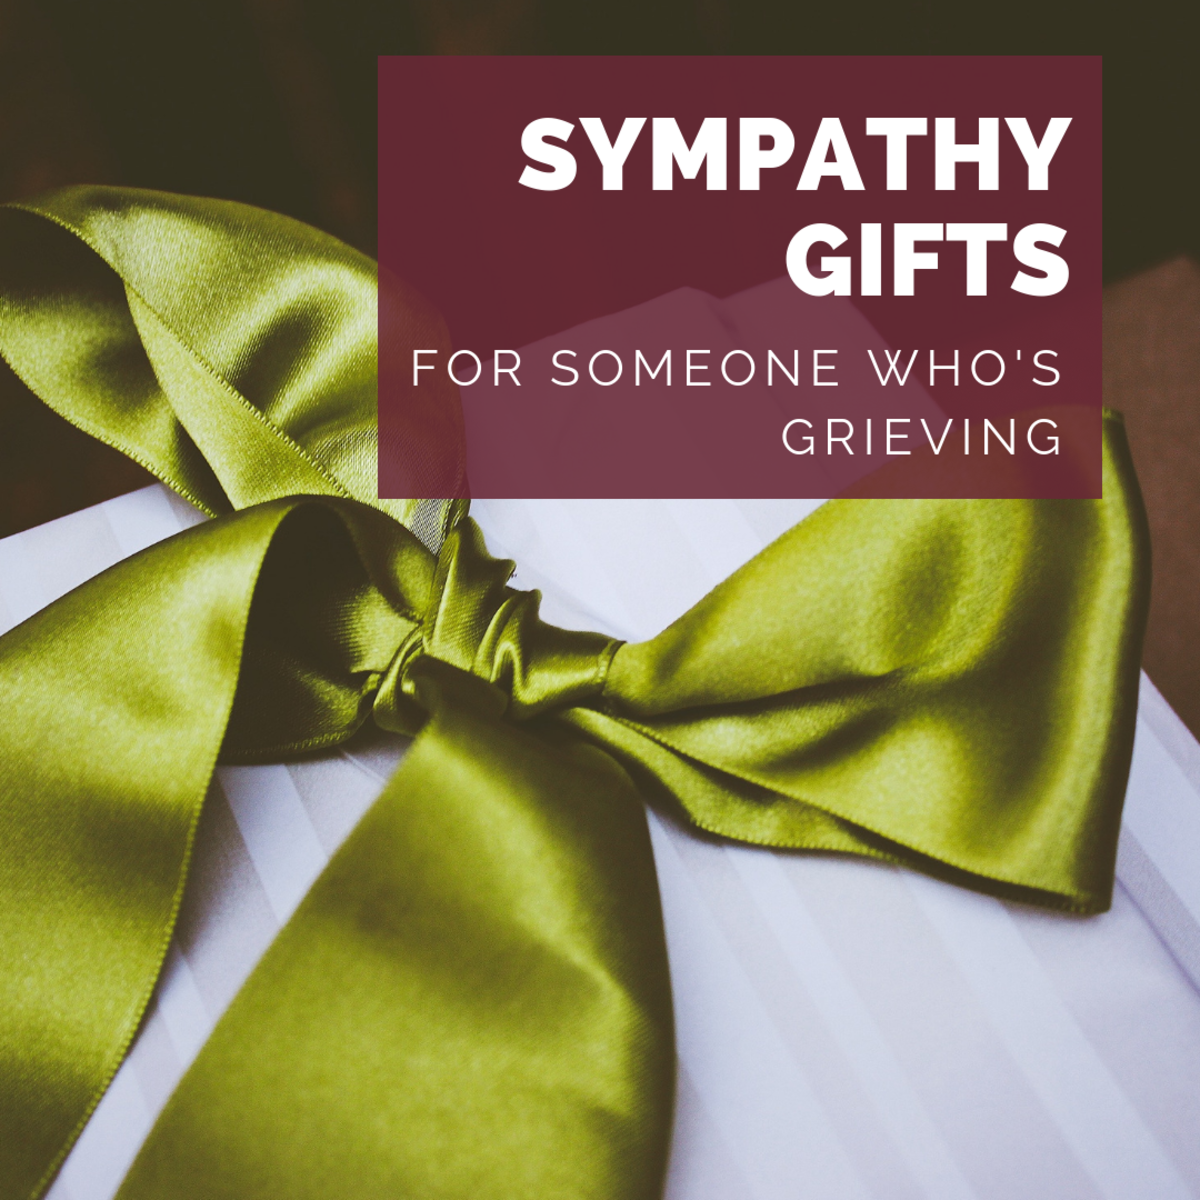 Gift Ideas to Give Someone Whose Loved One Died (Instead of Flowers)